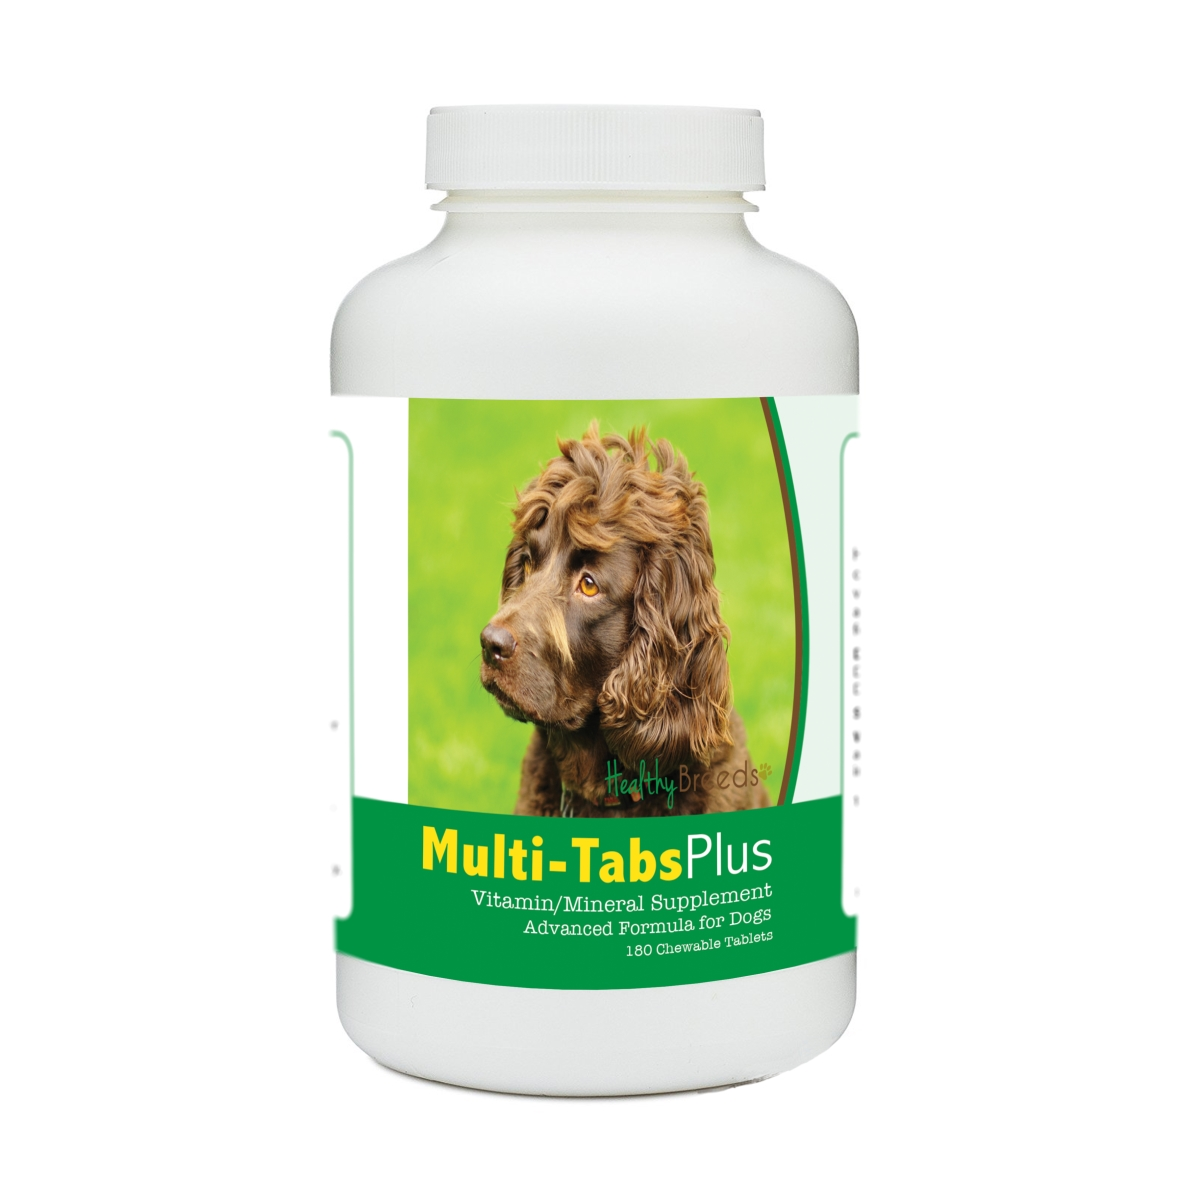 Healthy Breeds 840235173090 Boykin Spaniel Multi-Tabs Plus Chewable Tablets - 180 Count